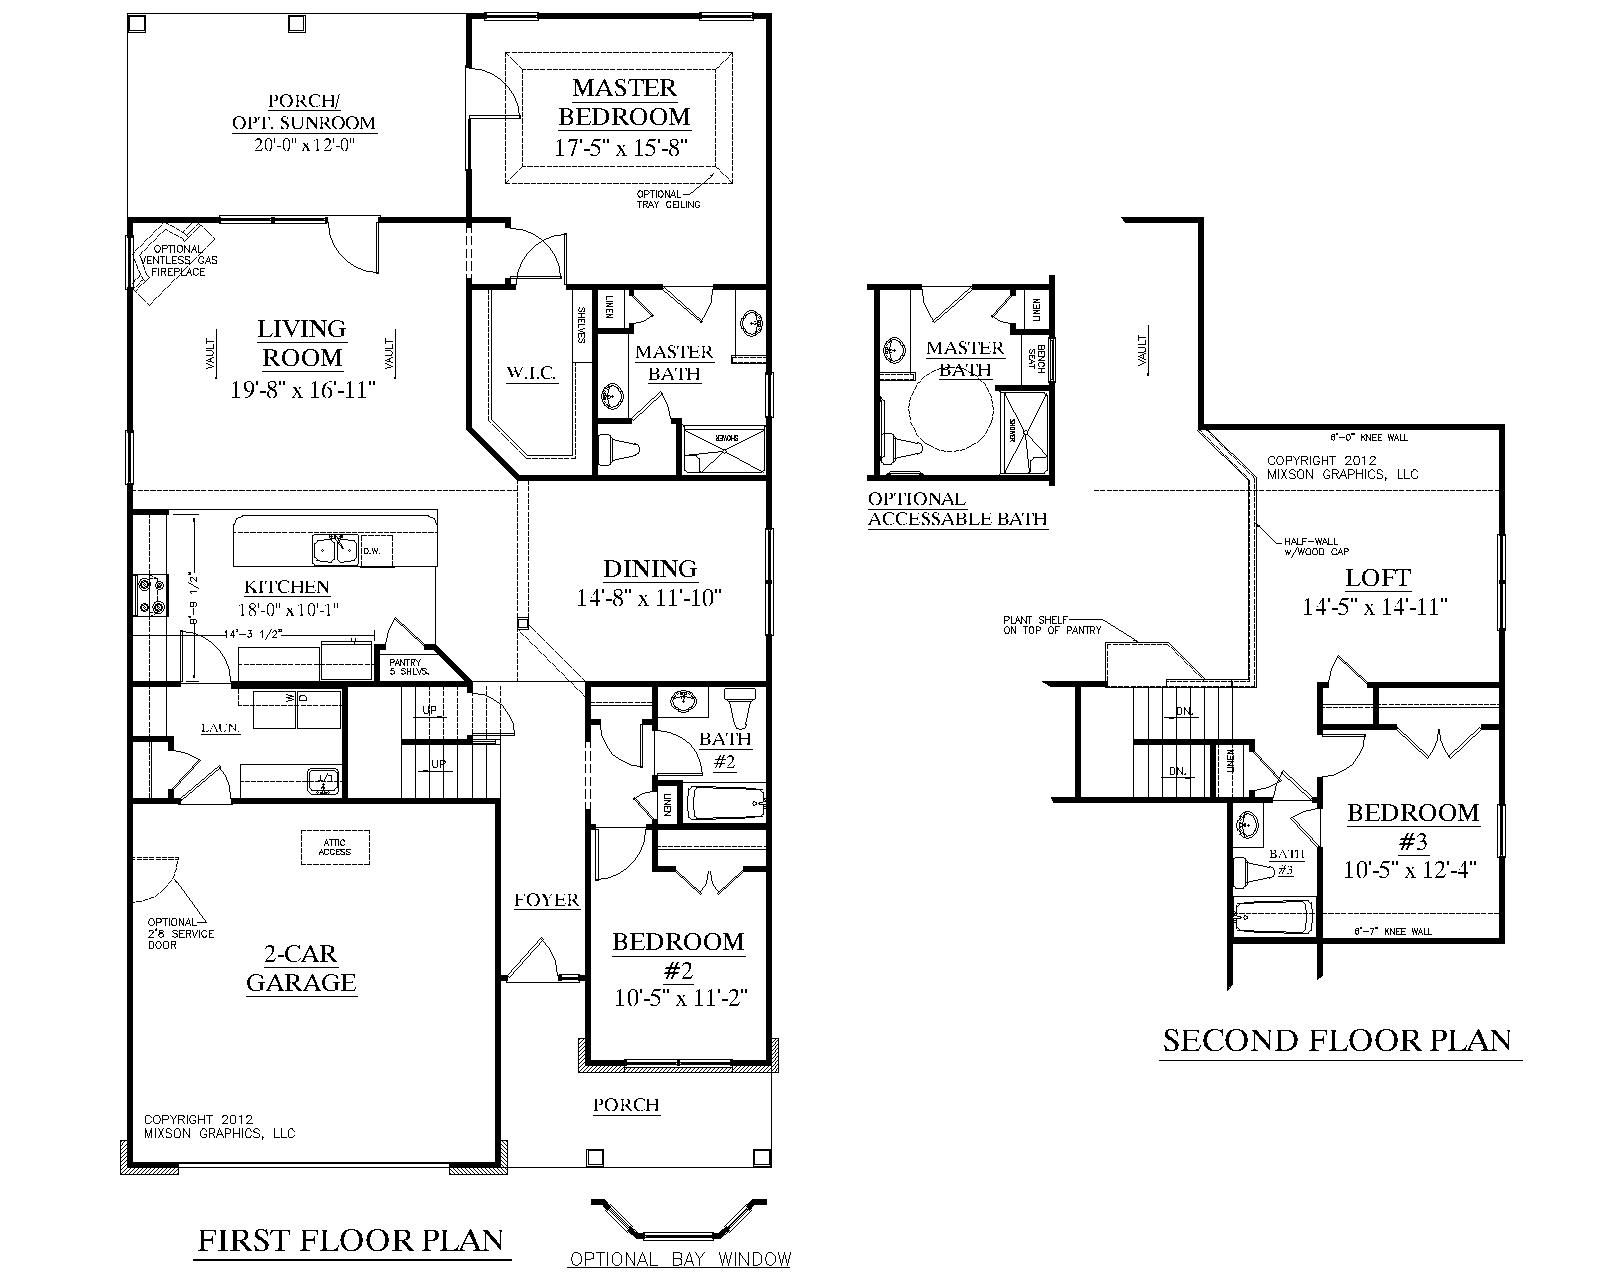 House plan 2224 kingstree floor plan traditional 1 1 2 for Upstairs plans